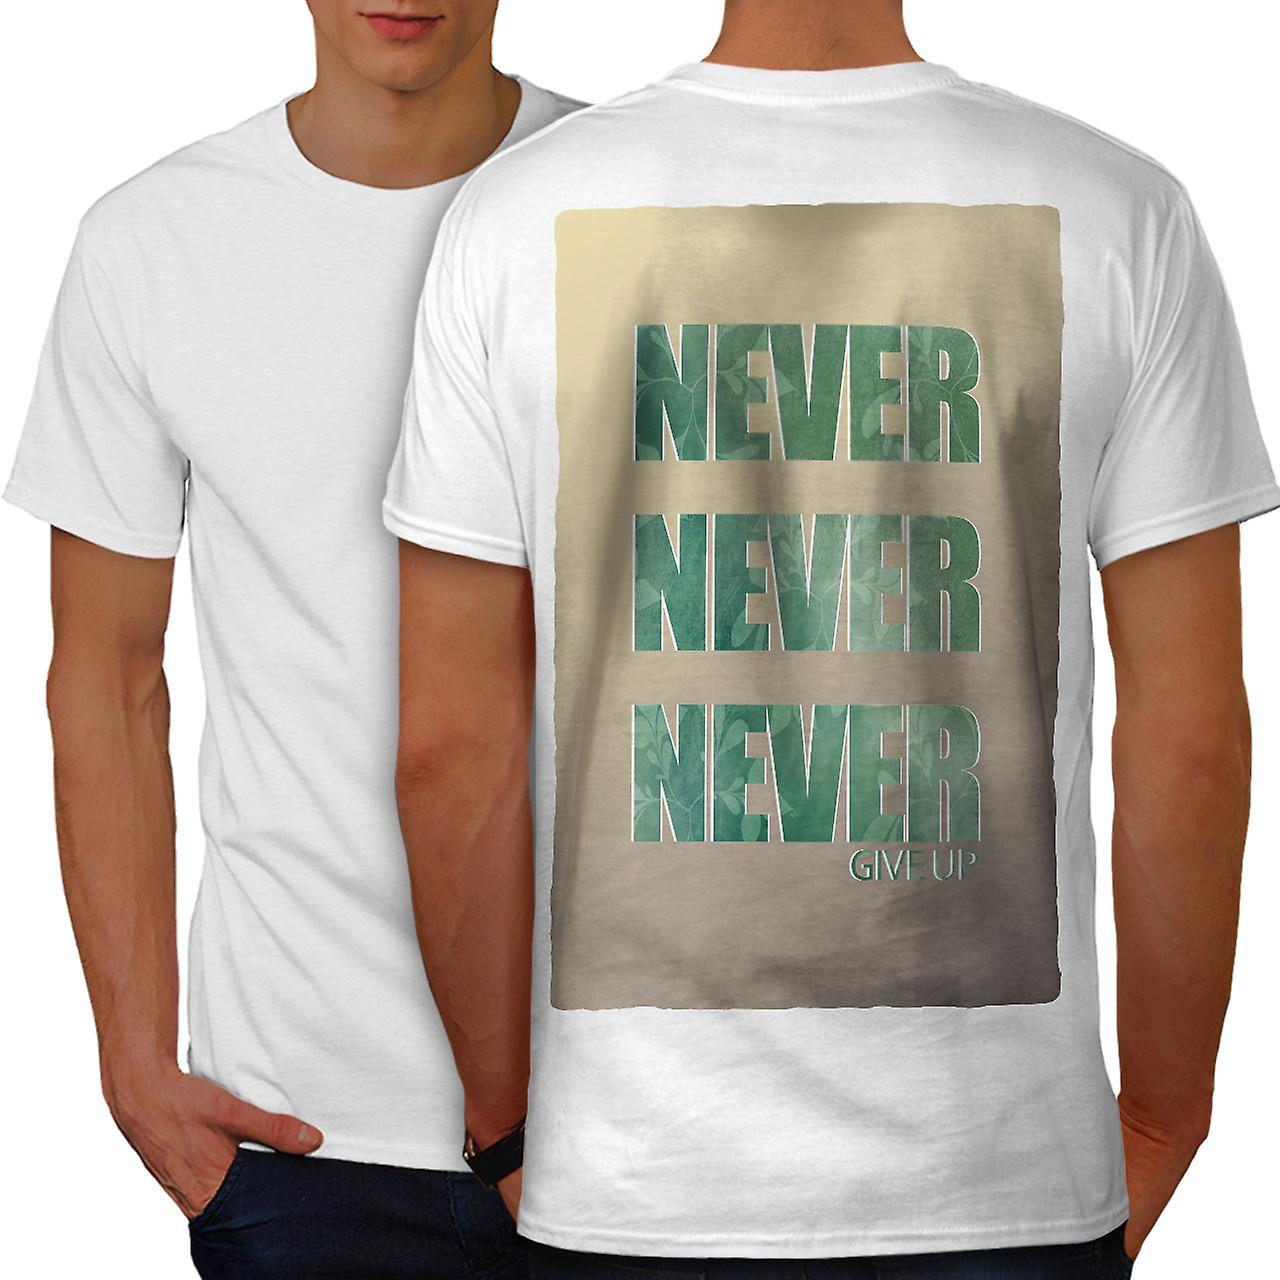 The Never give up fashions